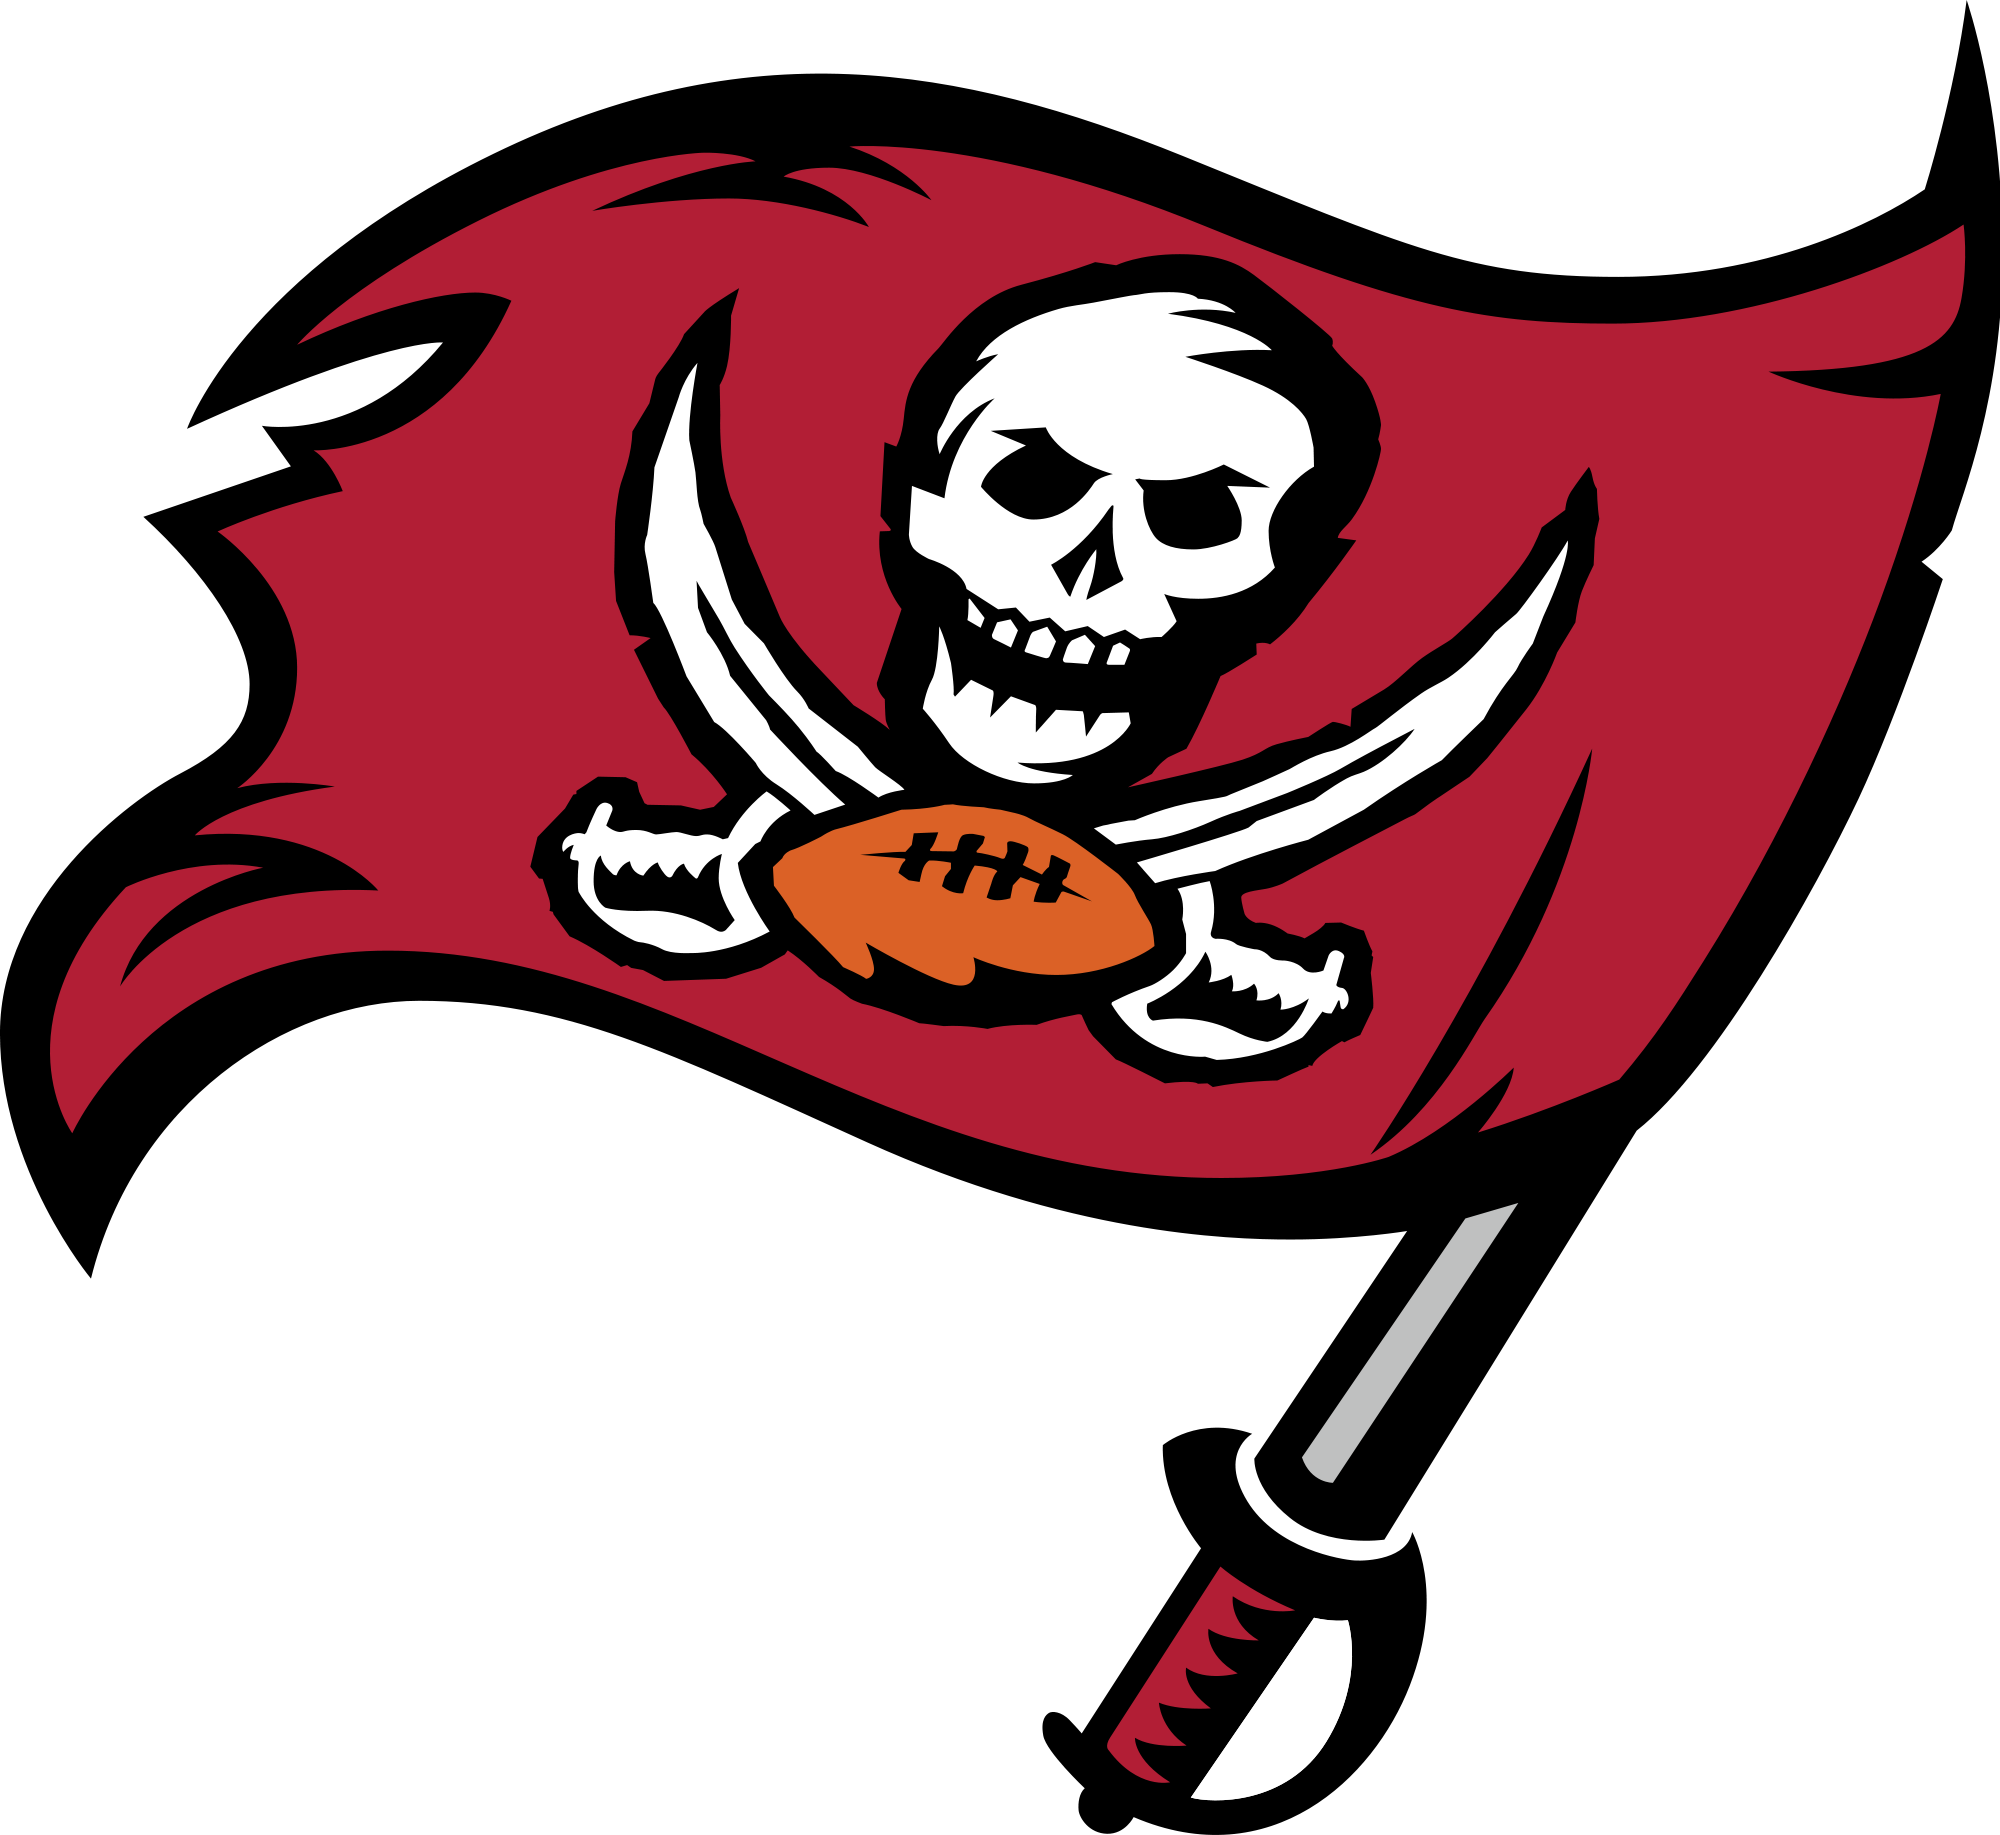 Tampa Bay Buccaneers at Buffalo Bills - Buffalo Bills PNG